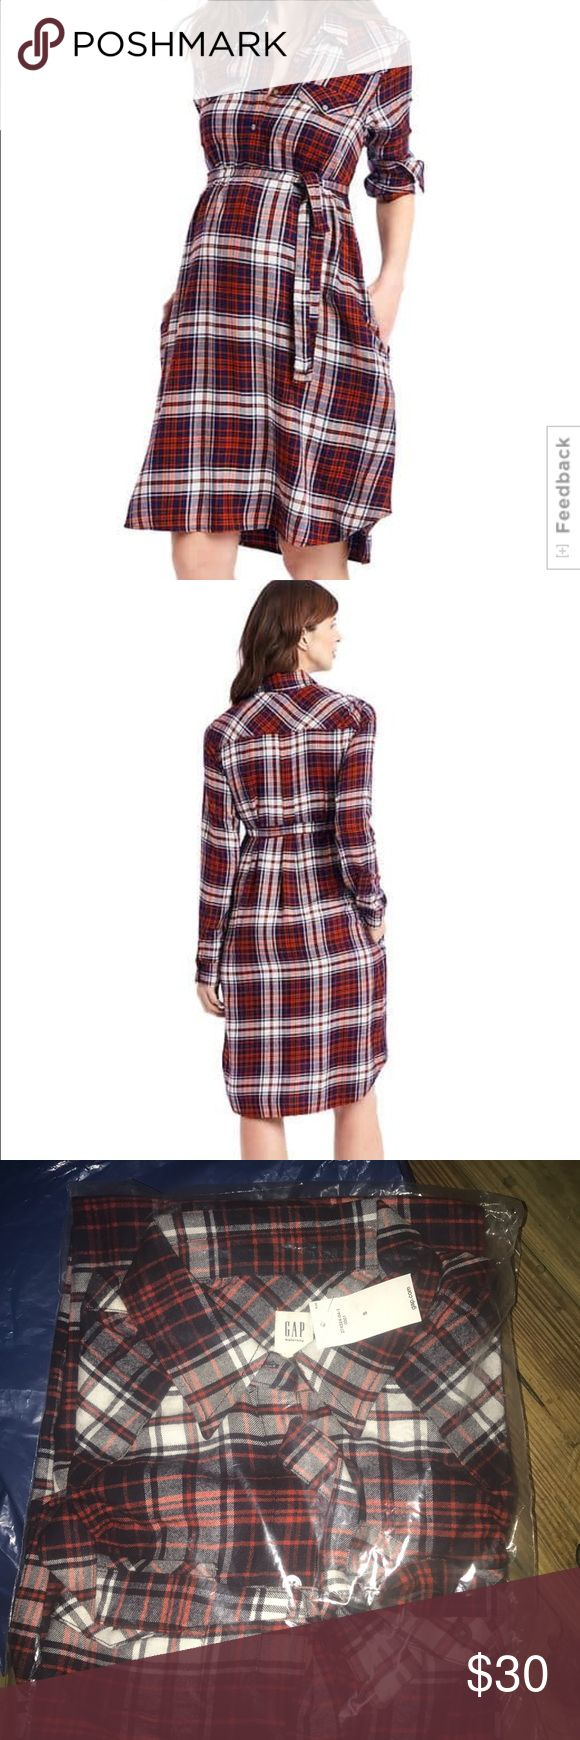 NEW Gap Plaid Tie Belt Shirt dress Small Brand new in plaid in red, navy blue, ( looks black but is dark navy) and white  Size small This is not named a maternity dress on the Gap site (where I purchased) but it shows that an expecting mother could easily wear with the belt GAP Dresses